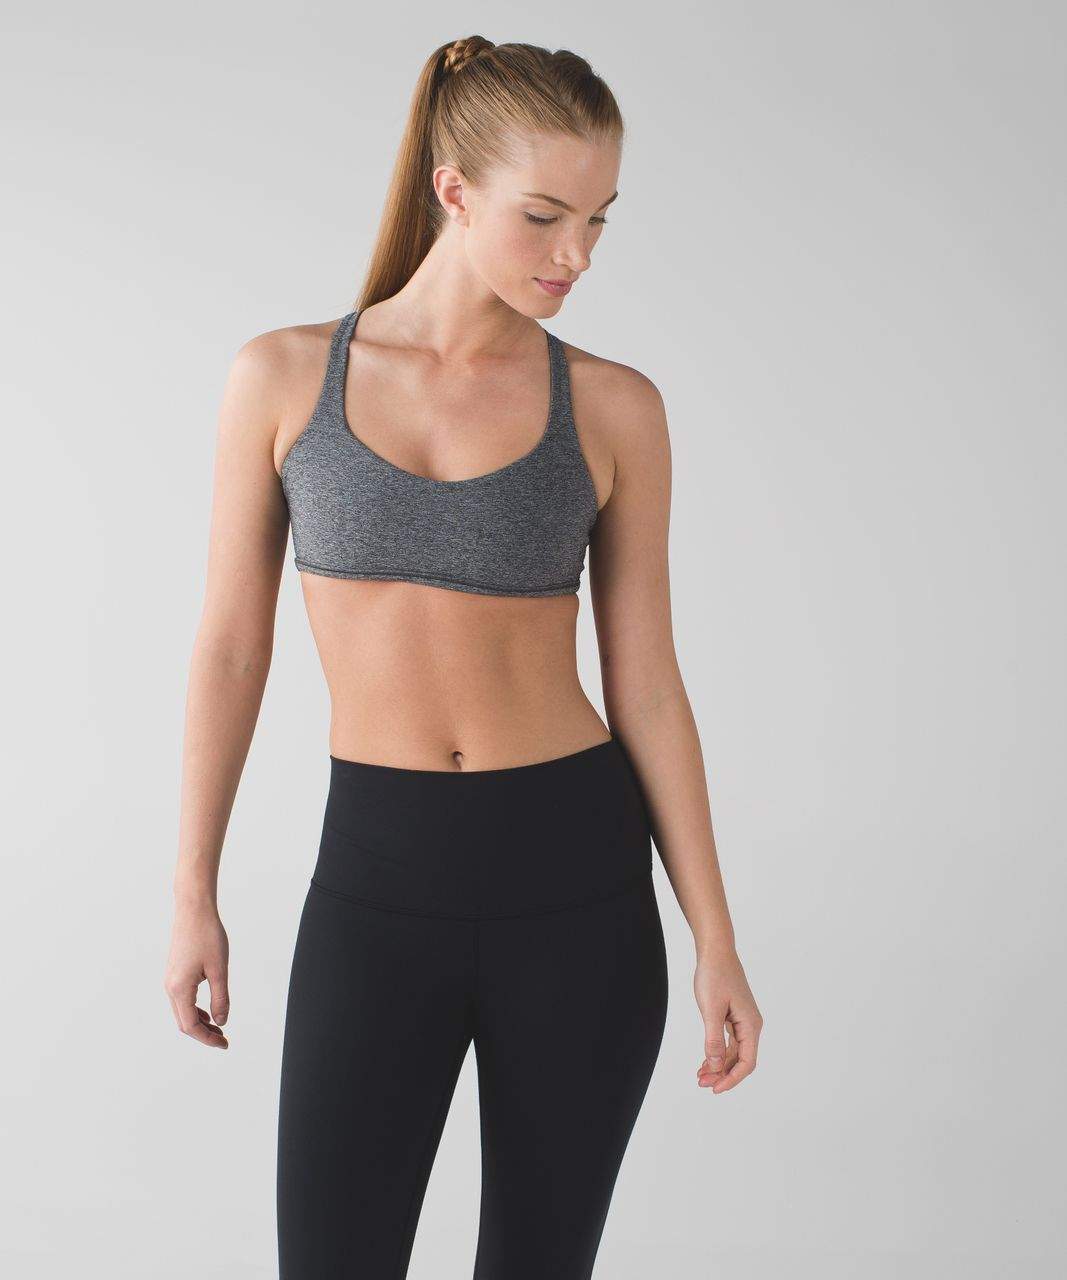 Lululemon Free To Be *Wild - Heathered Black / White / Black